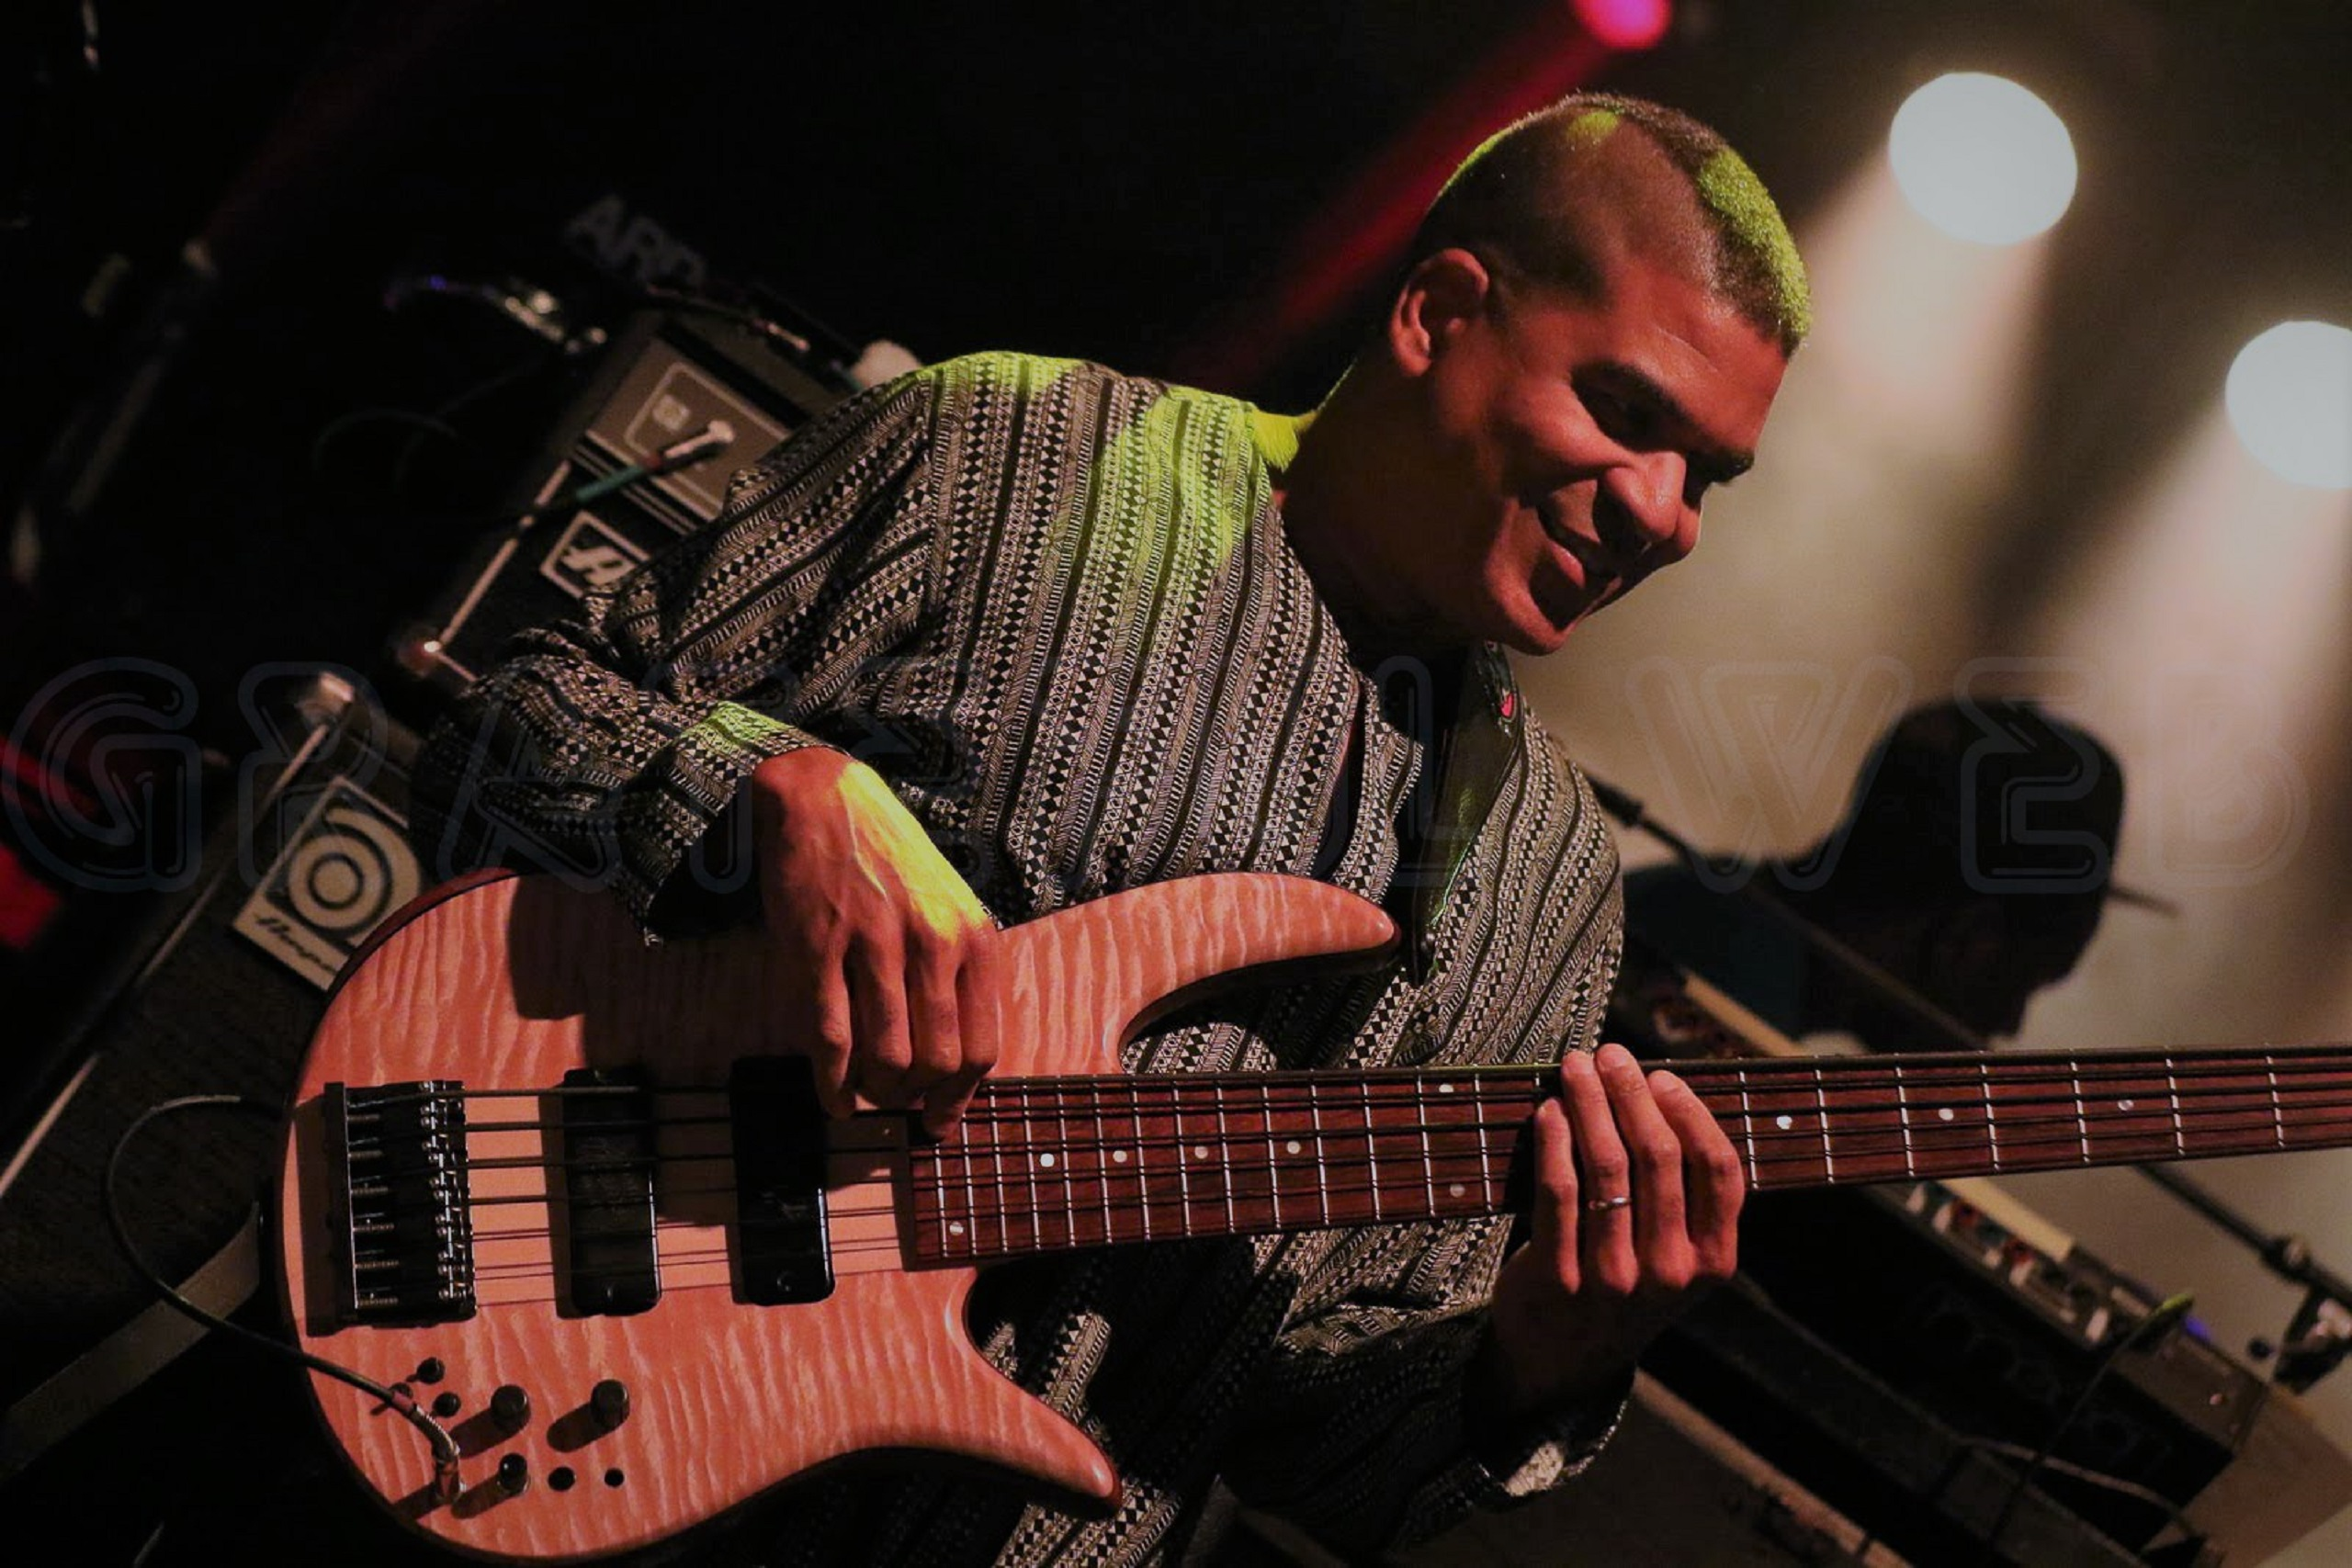 Oteil Burbridge Boulder Theater Shows Postponed till March 15th & 16th